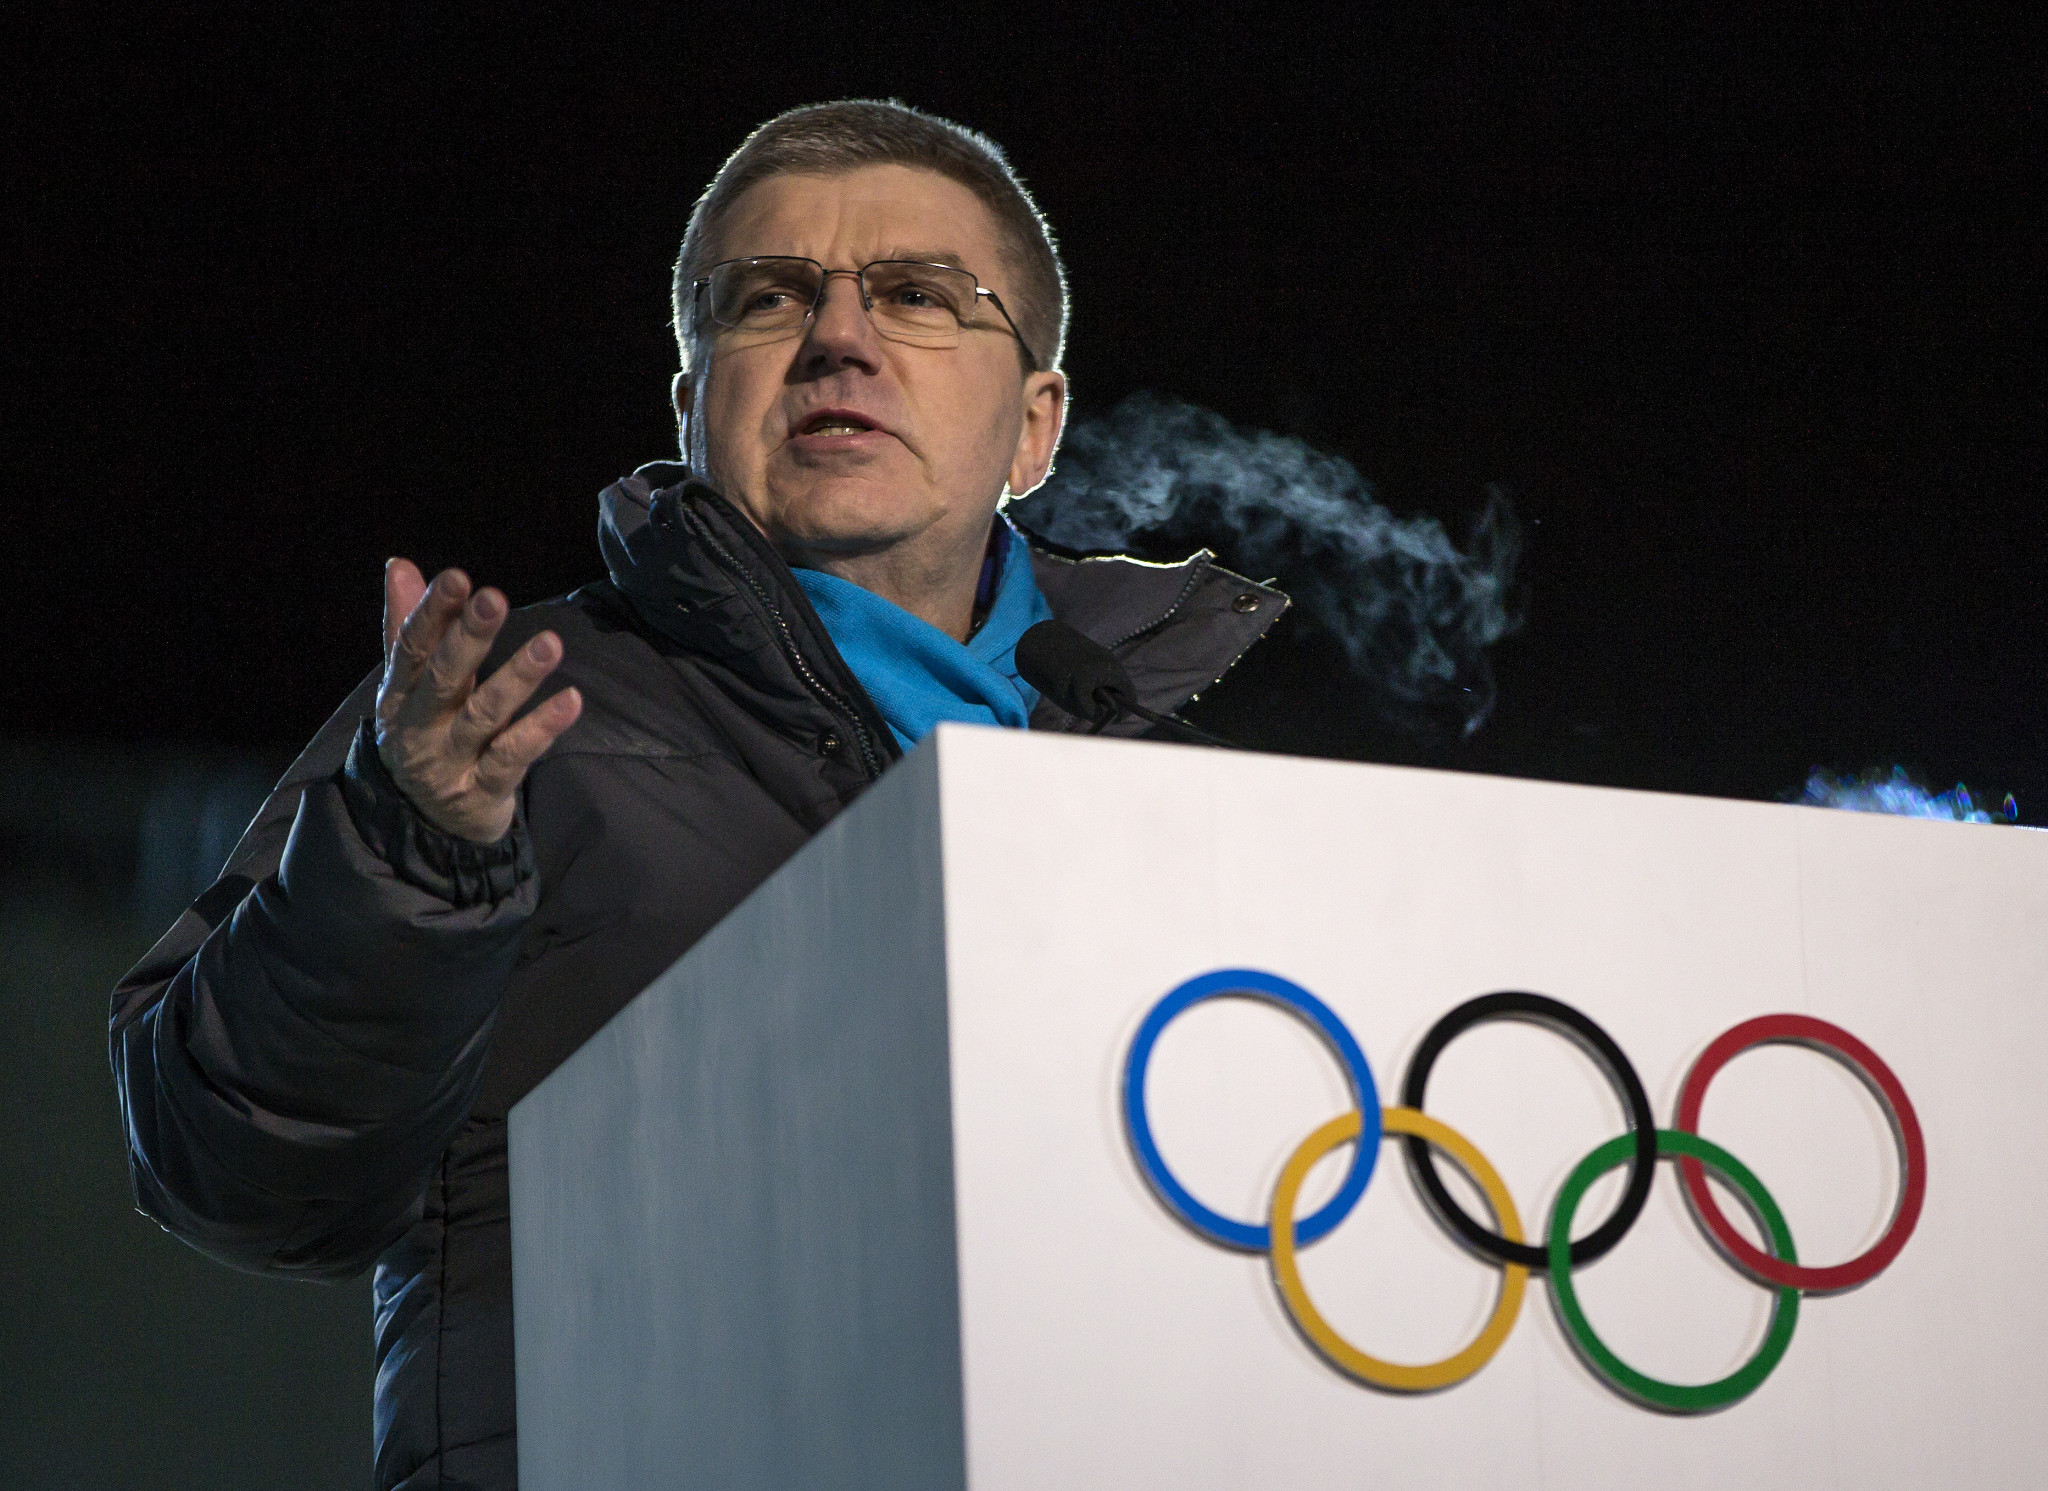 Thomas Bach has been President of the IOC since September 2013 after previously serving as vice-president ©Getty Images